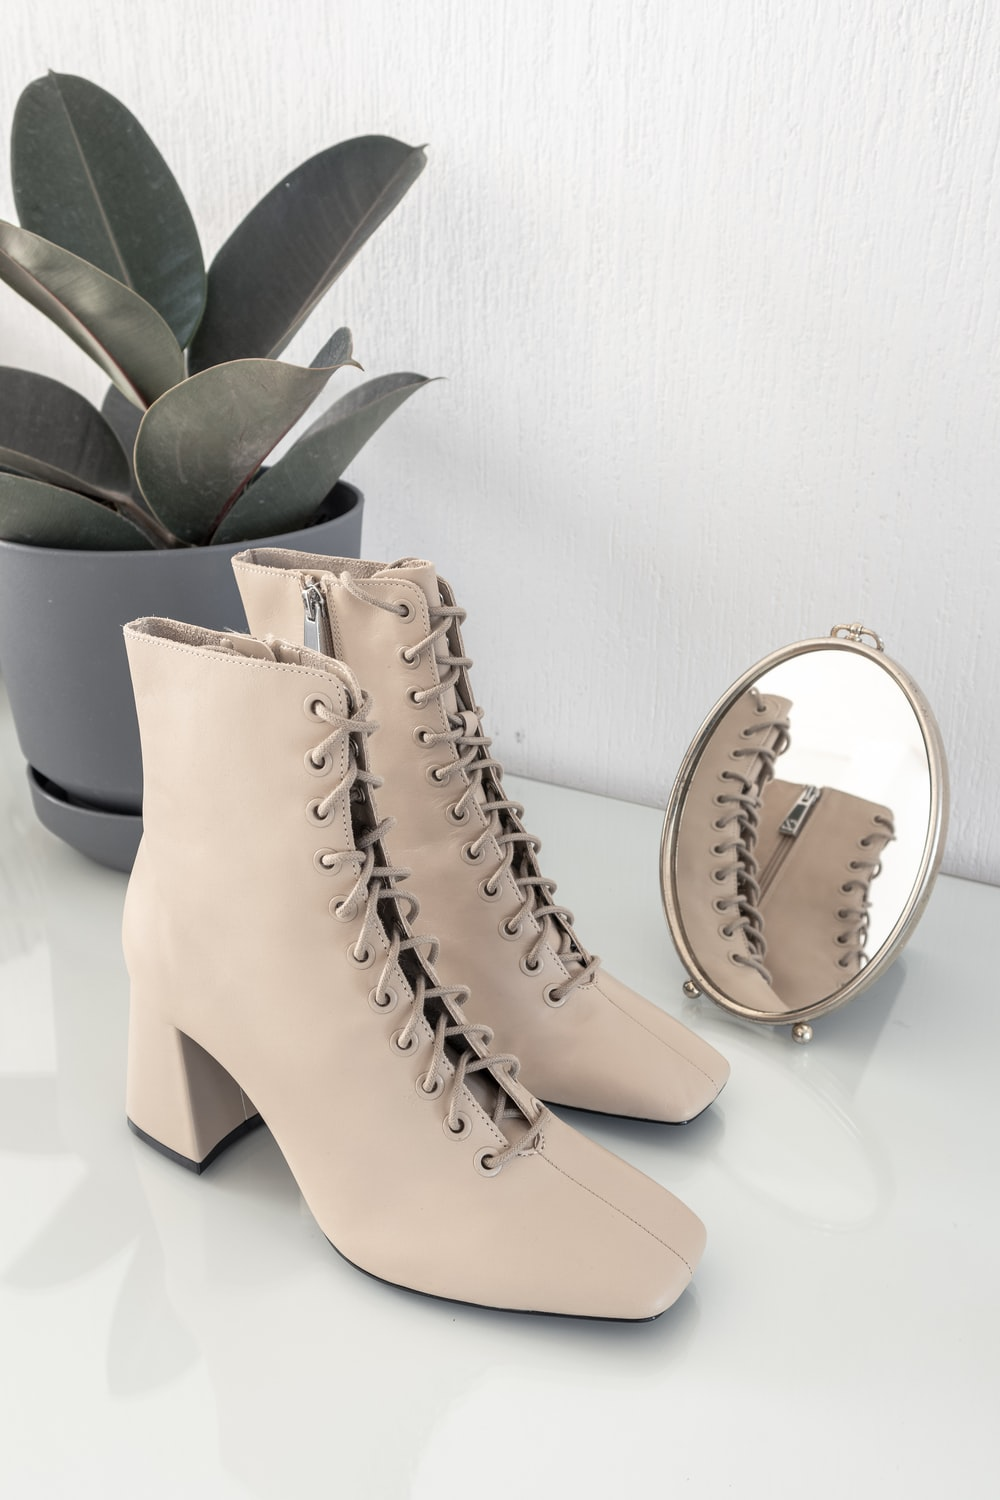 6 Boot Trends for Fall Winter 2021 to Try Out This Season!